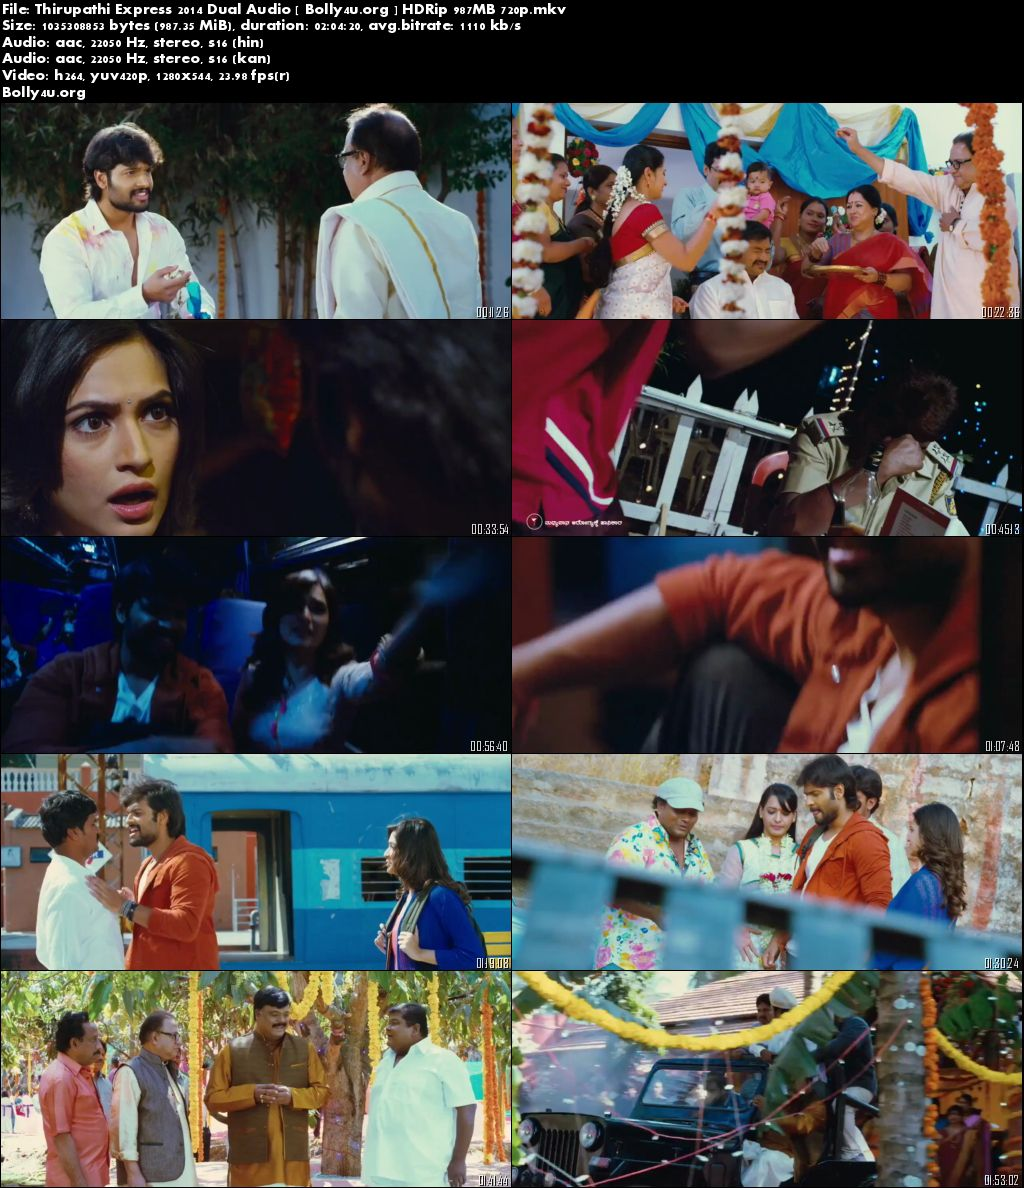 Thirupathi Express 2014 HDRip Hindi 350Mb Dual Audio 480p Bolly4u